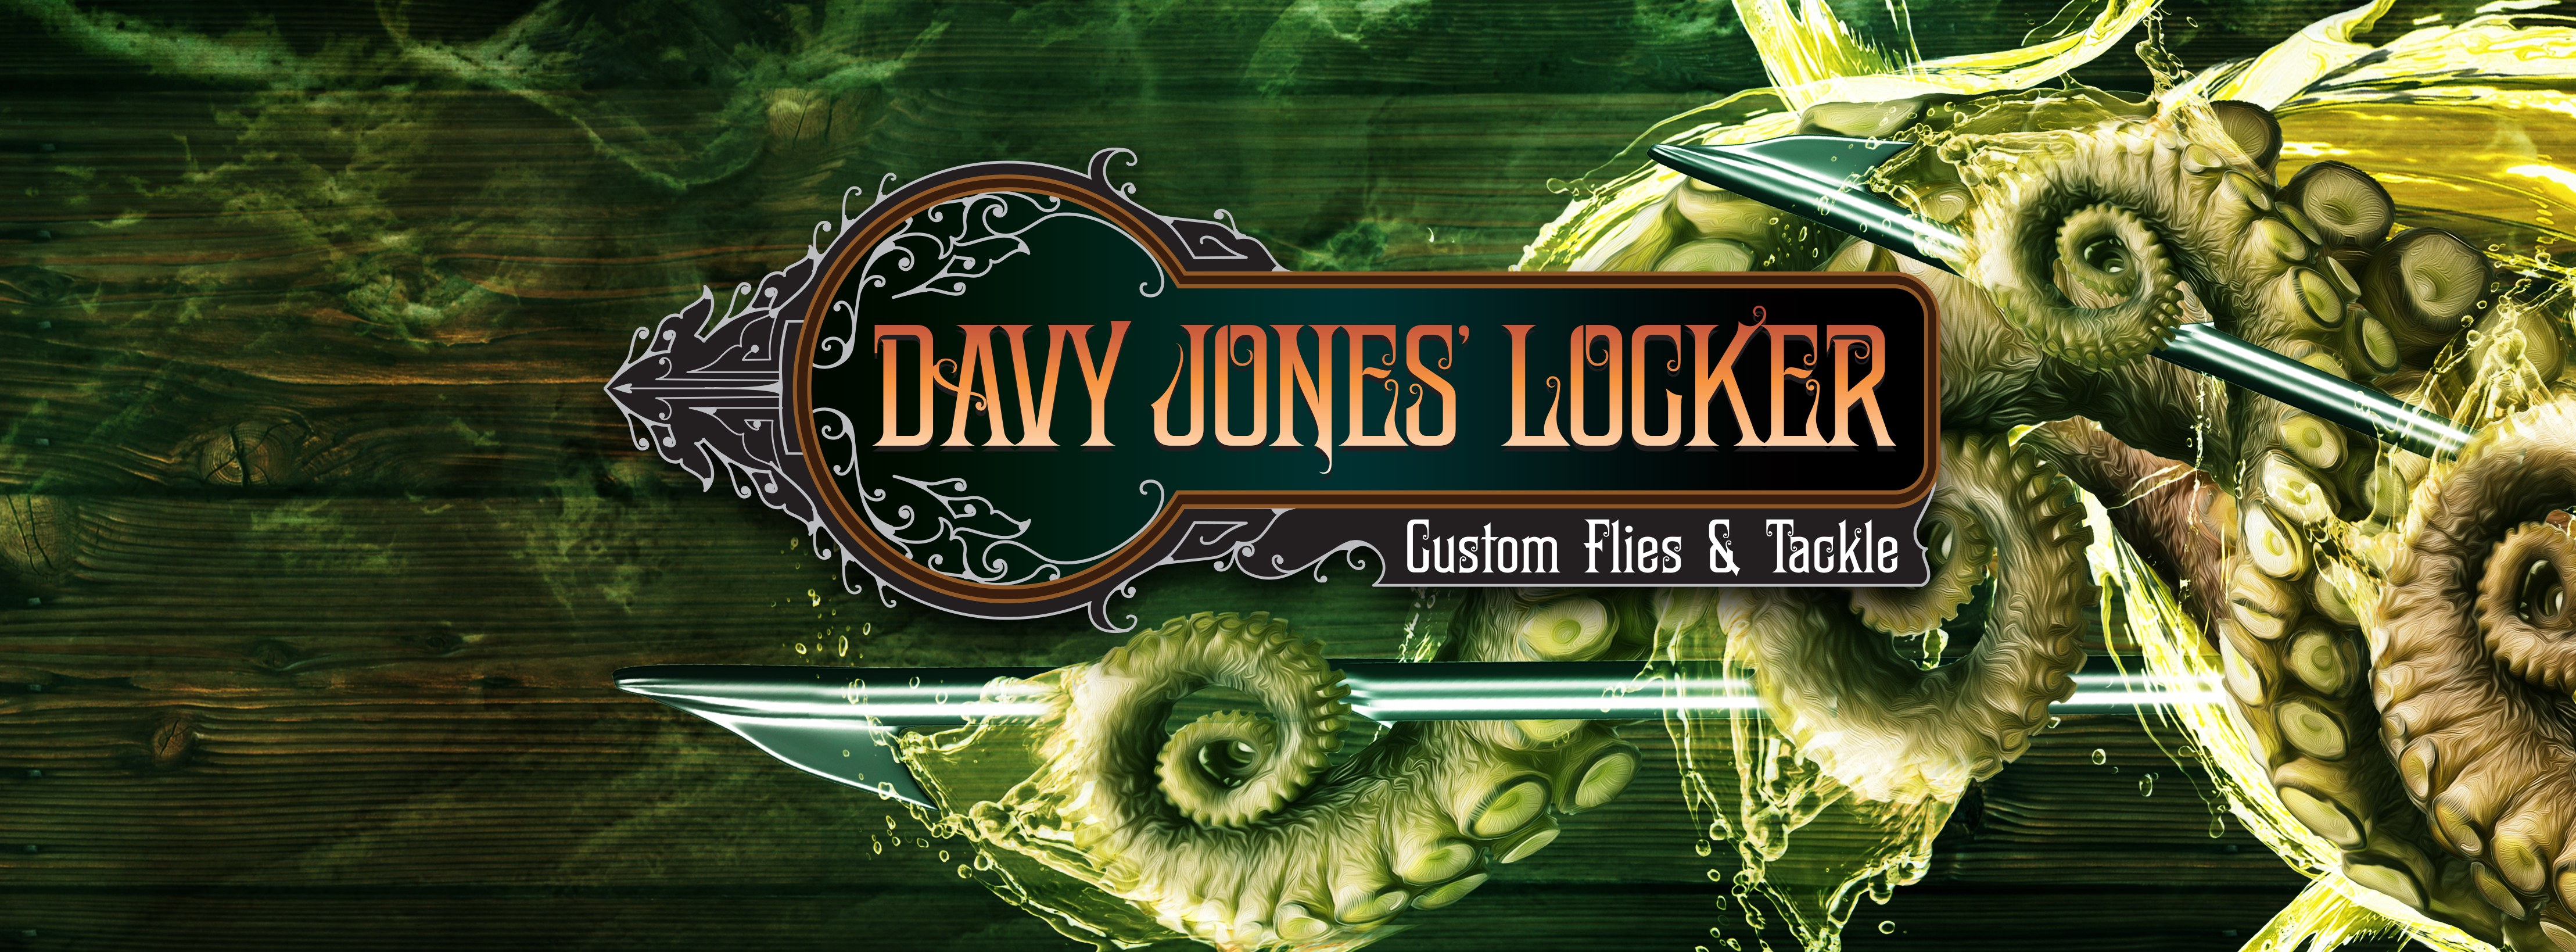 Davy Jones Locker Custom Flies and Tackle